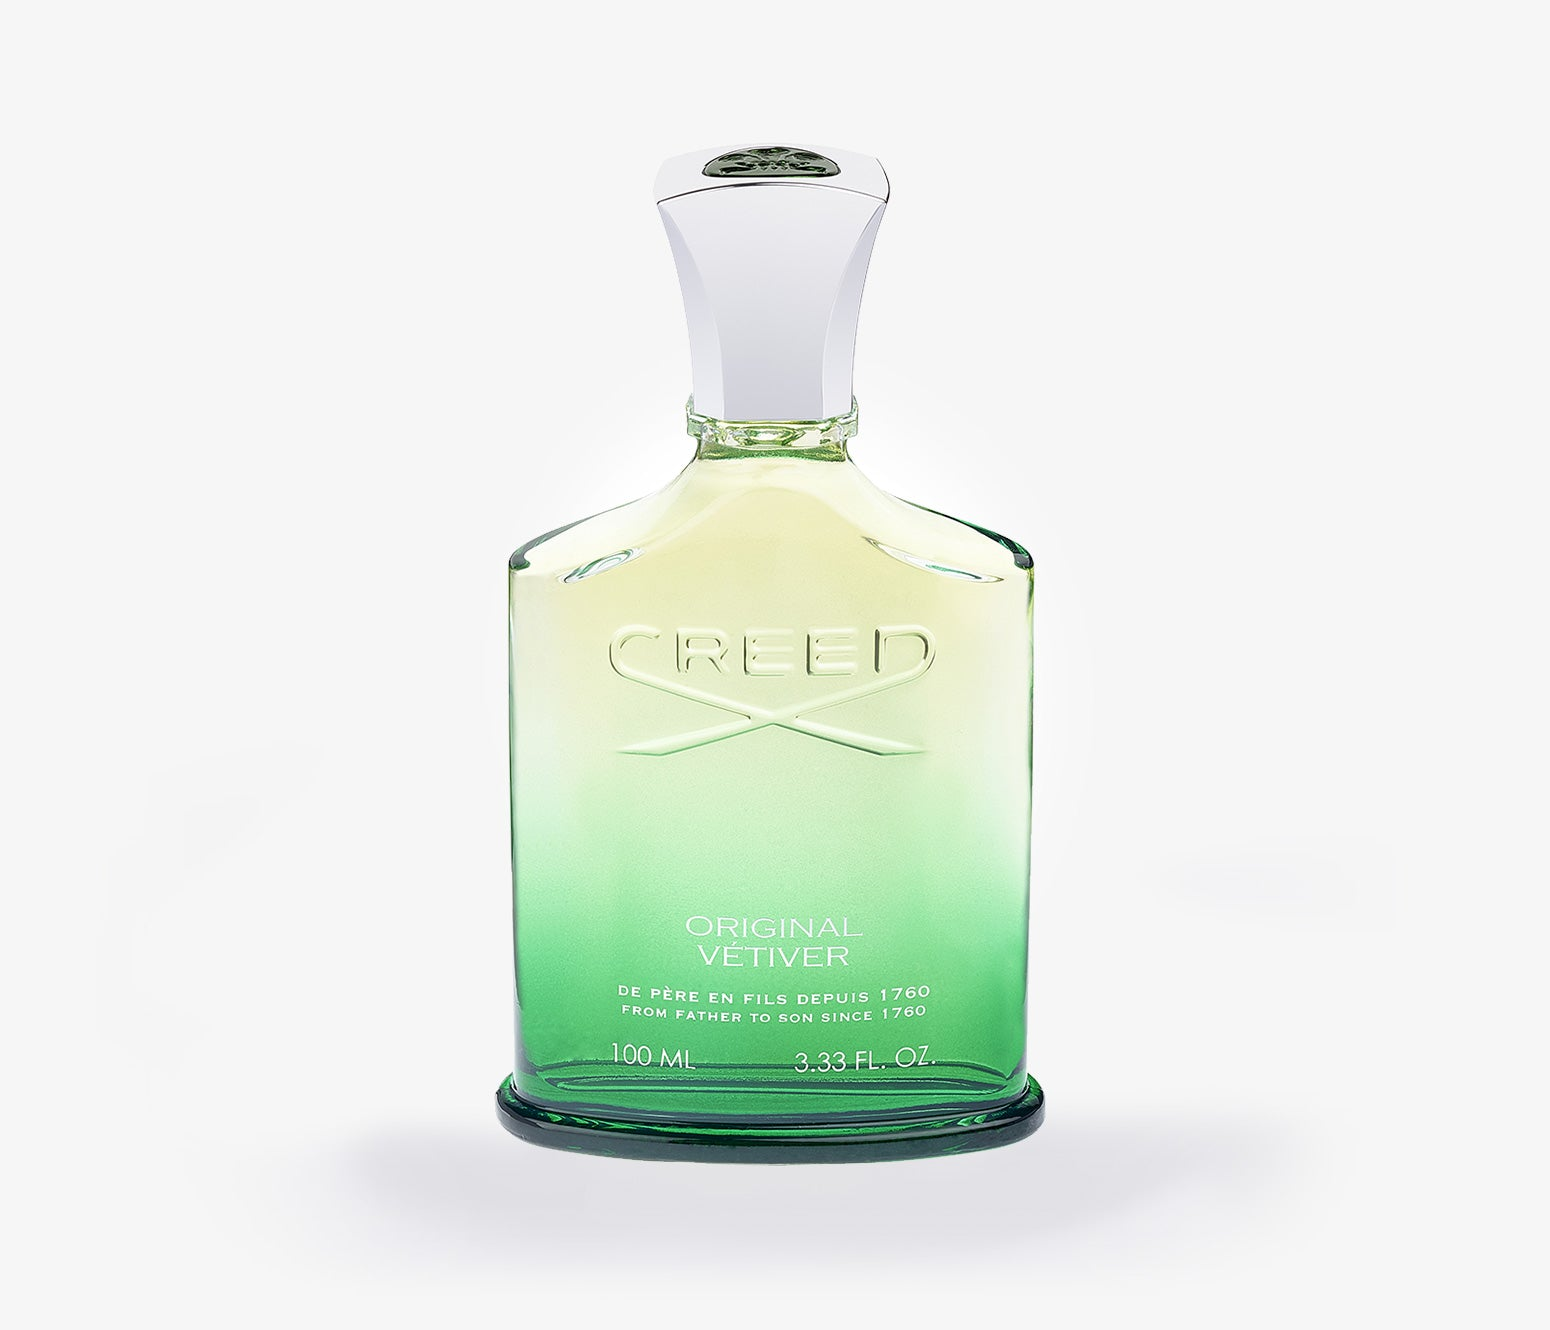 Creed - Original Vetiver - 50ml - IEP001 - Product Image - Fragrance - Les Senteurs